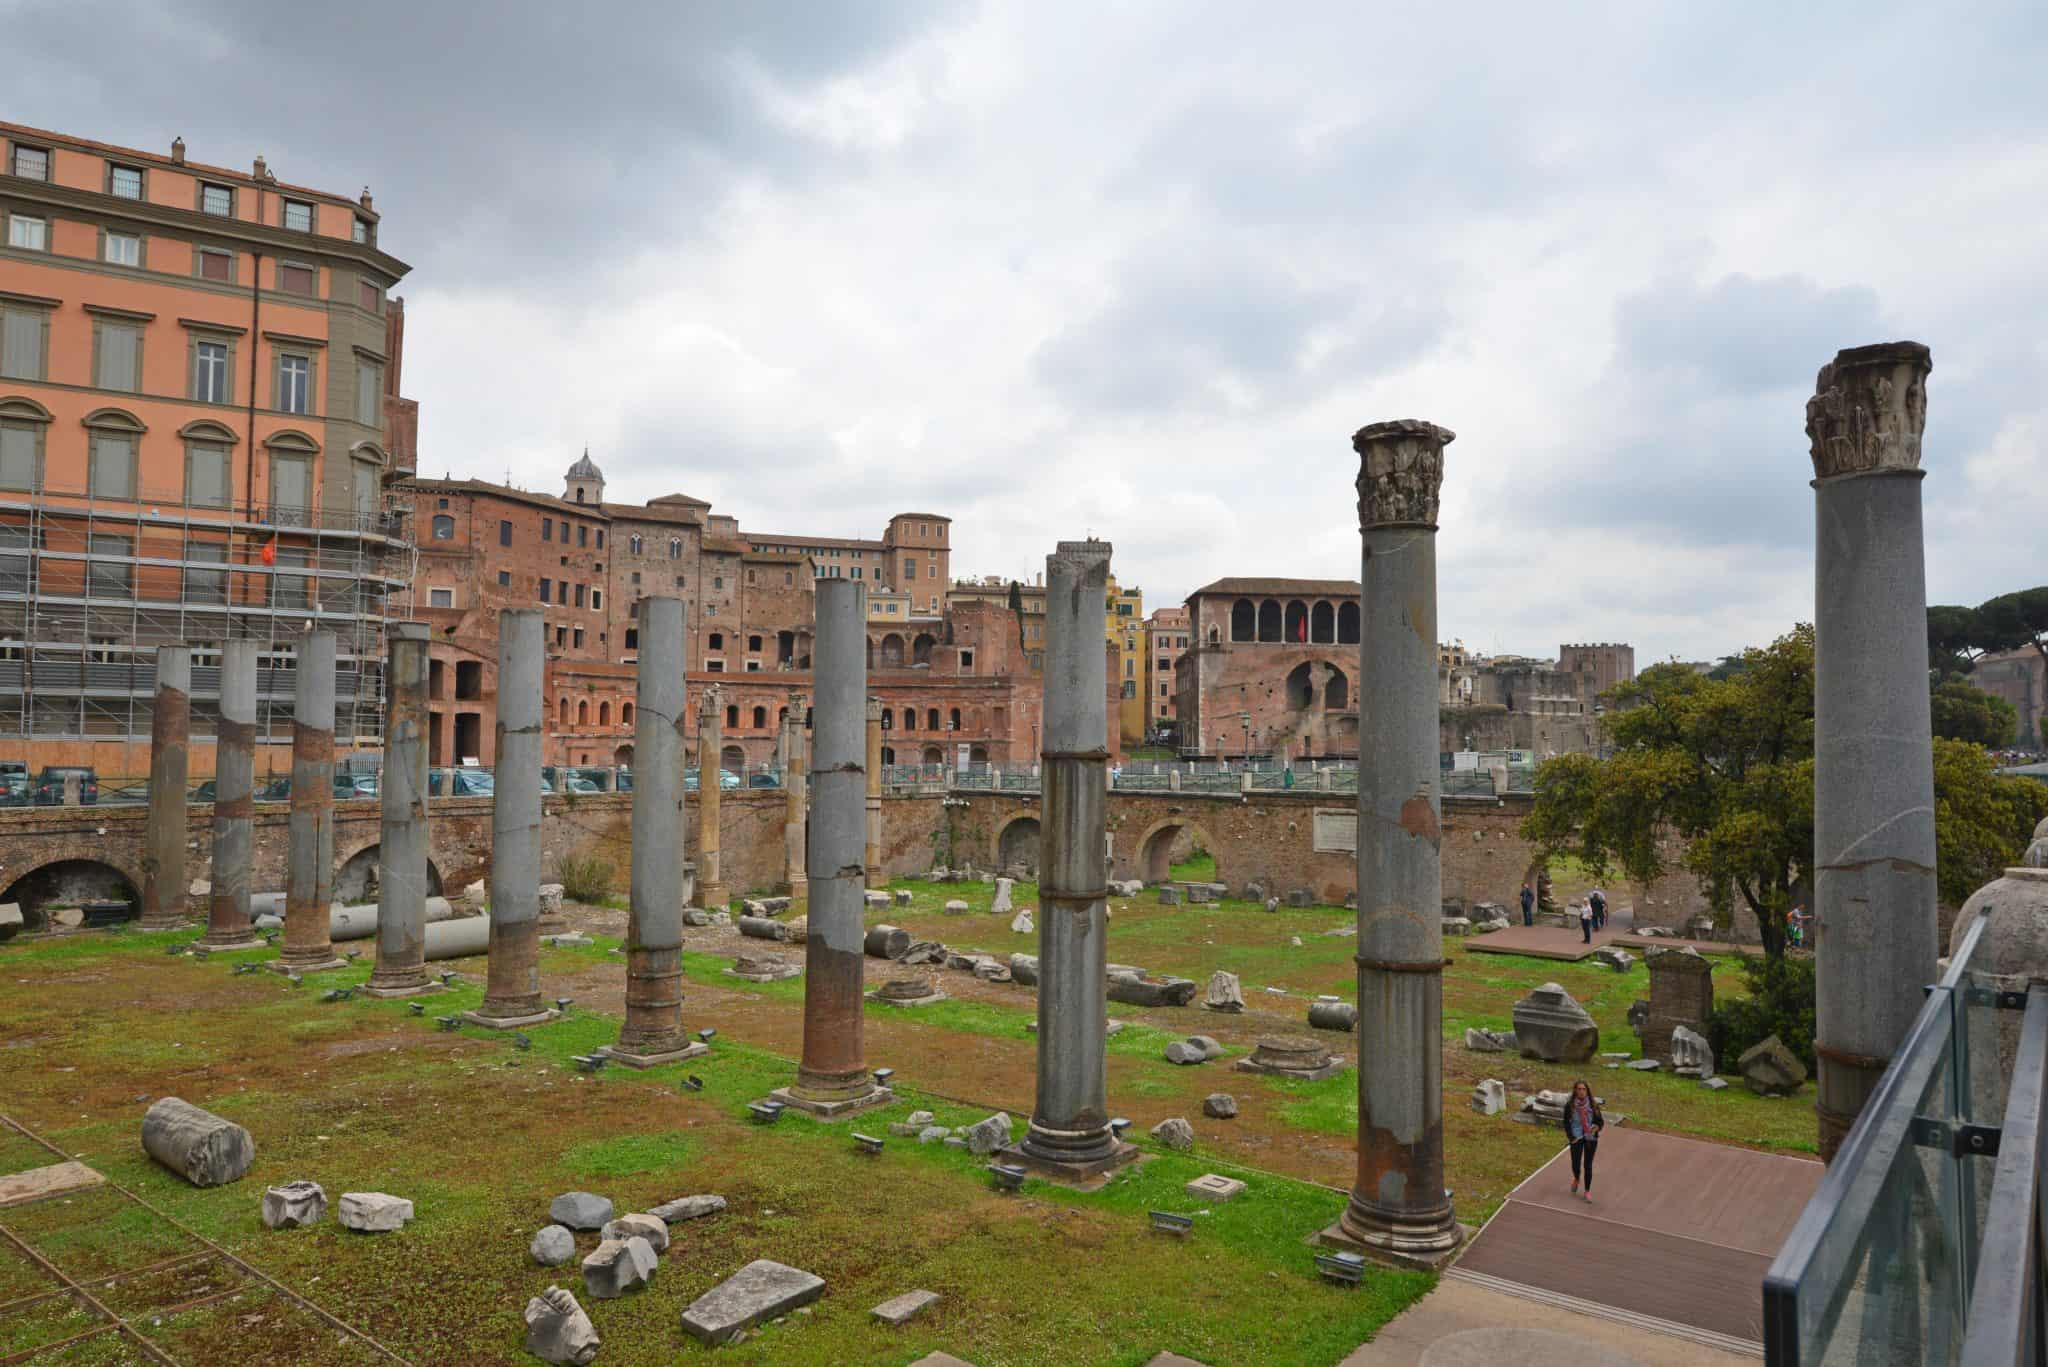 Day 3 of your Rome walk tour covers the Colosseum, Roman Forum, PalatineHill, Arch of Constantine. Walk with the gladiators!